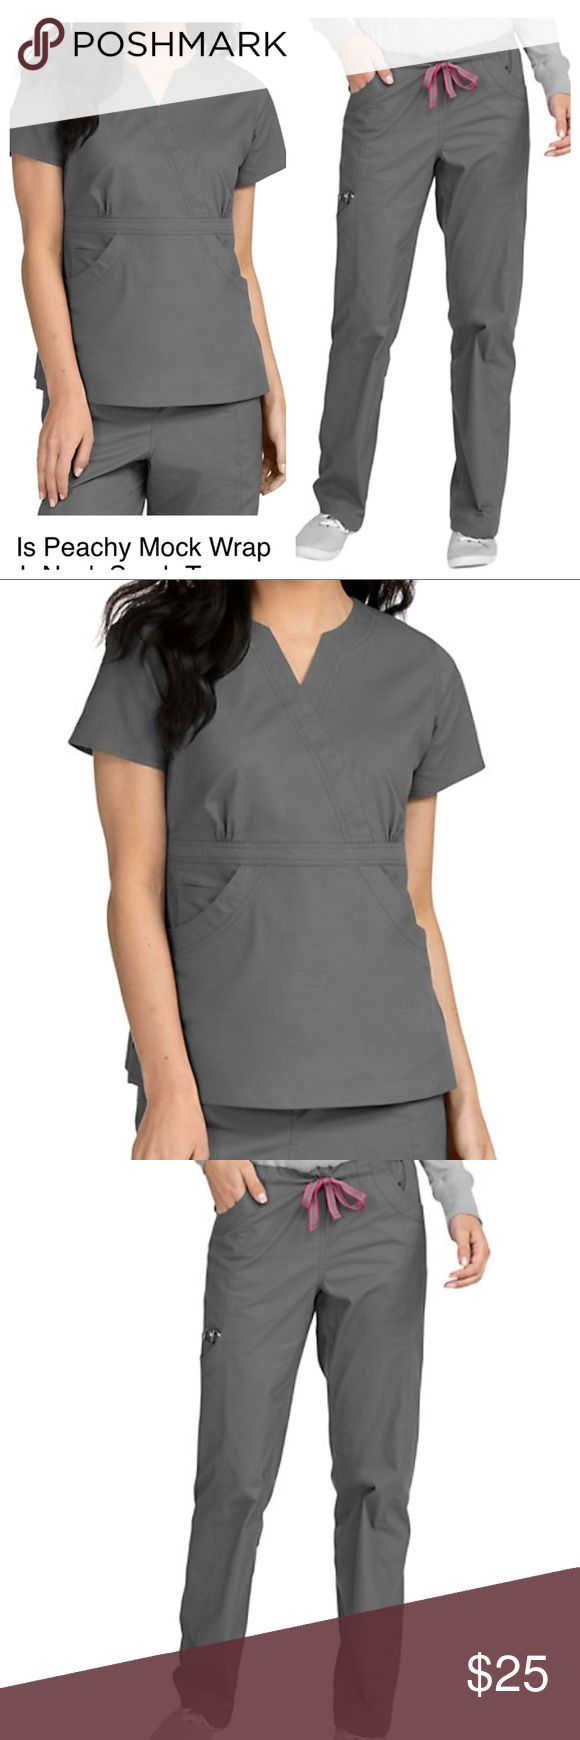 NWOT Life is Peachy steel grey scrub set Grey scrubs. Scrub set. Both size xs. New without tags. Washed after buying and decided I didn't like the style on me. Comfortable material and no flaws. Life is Peachy Pants Boot Cut & Flare